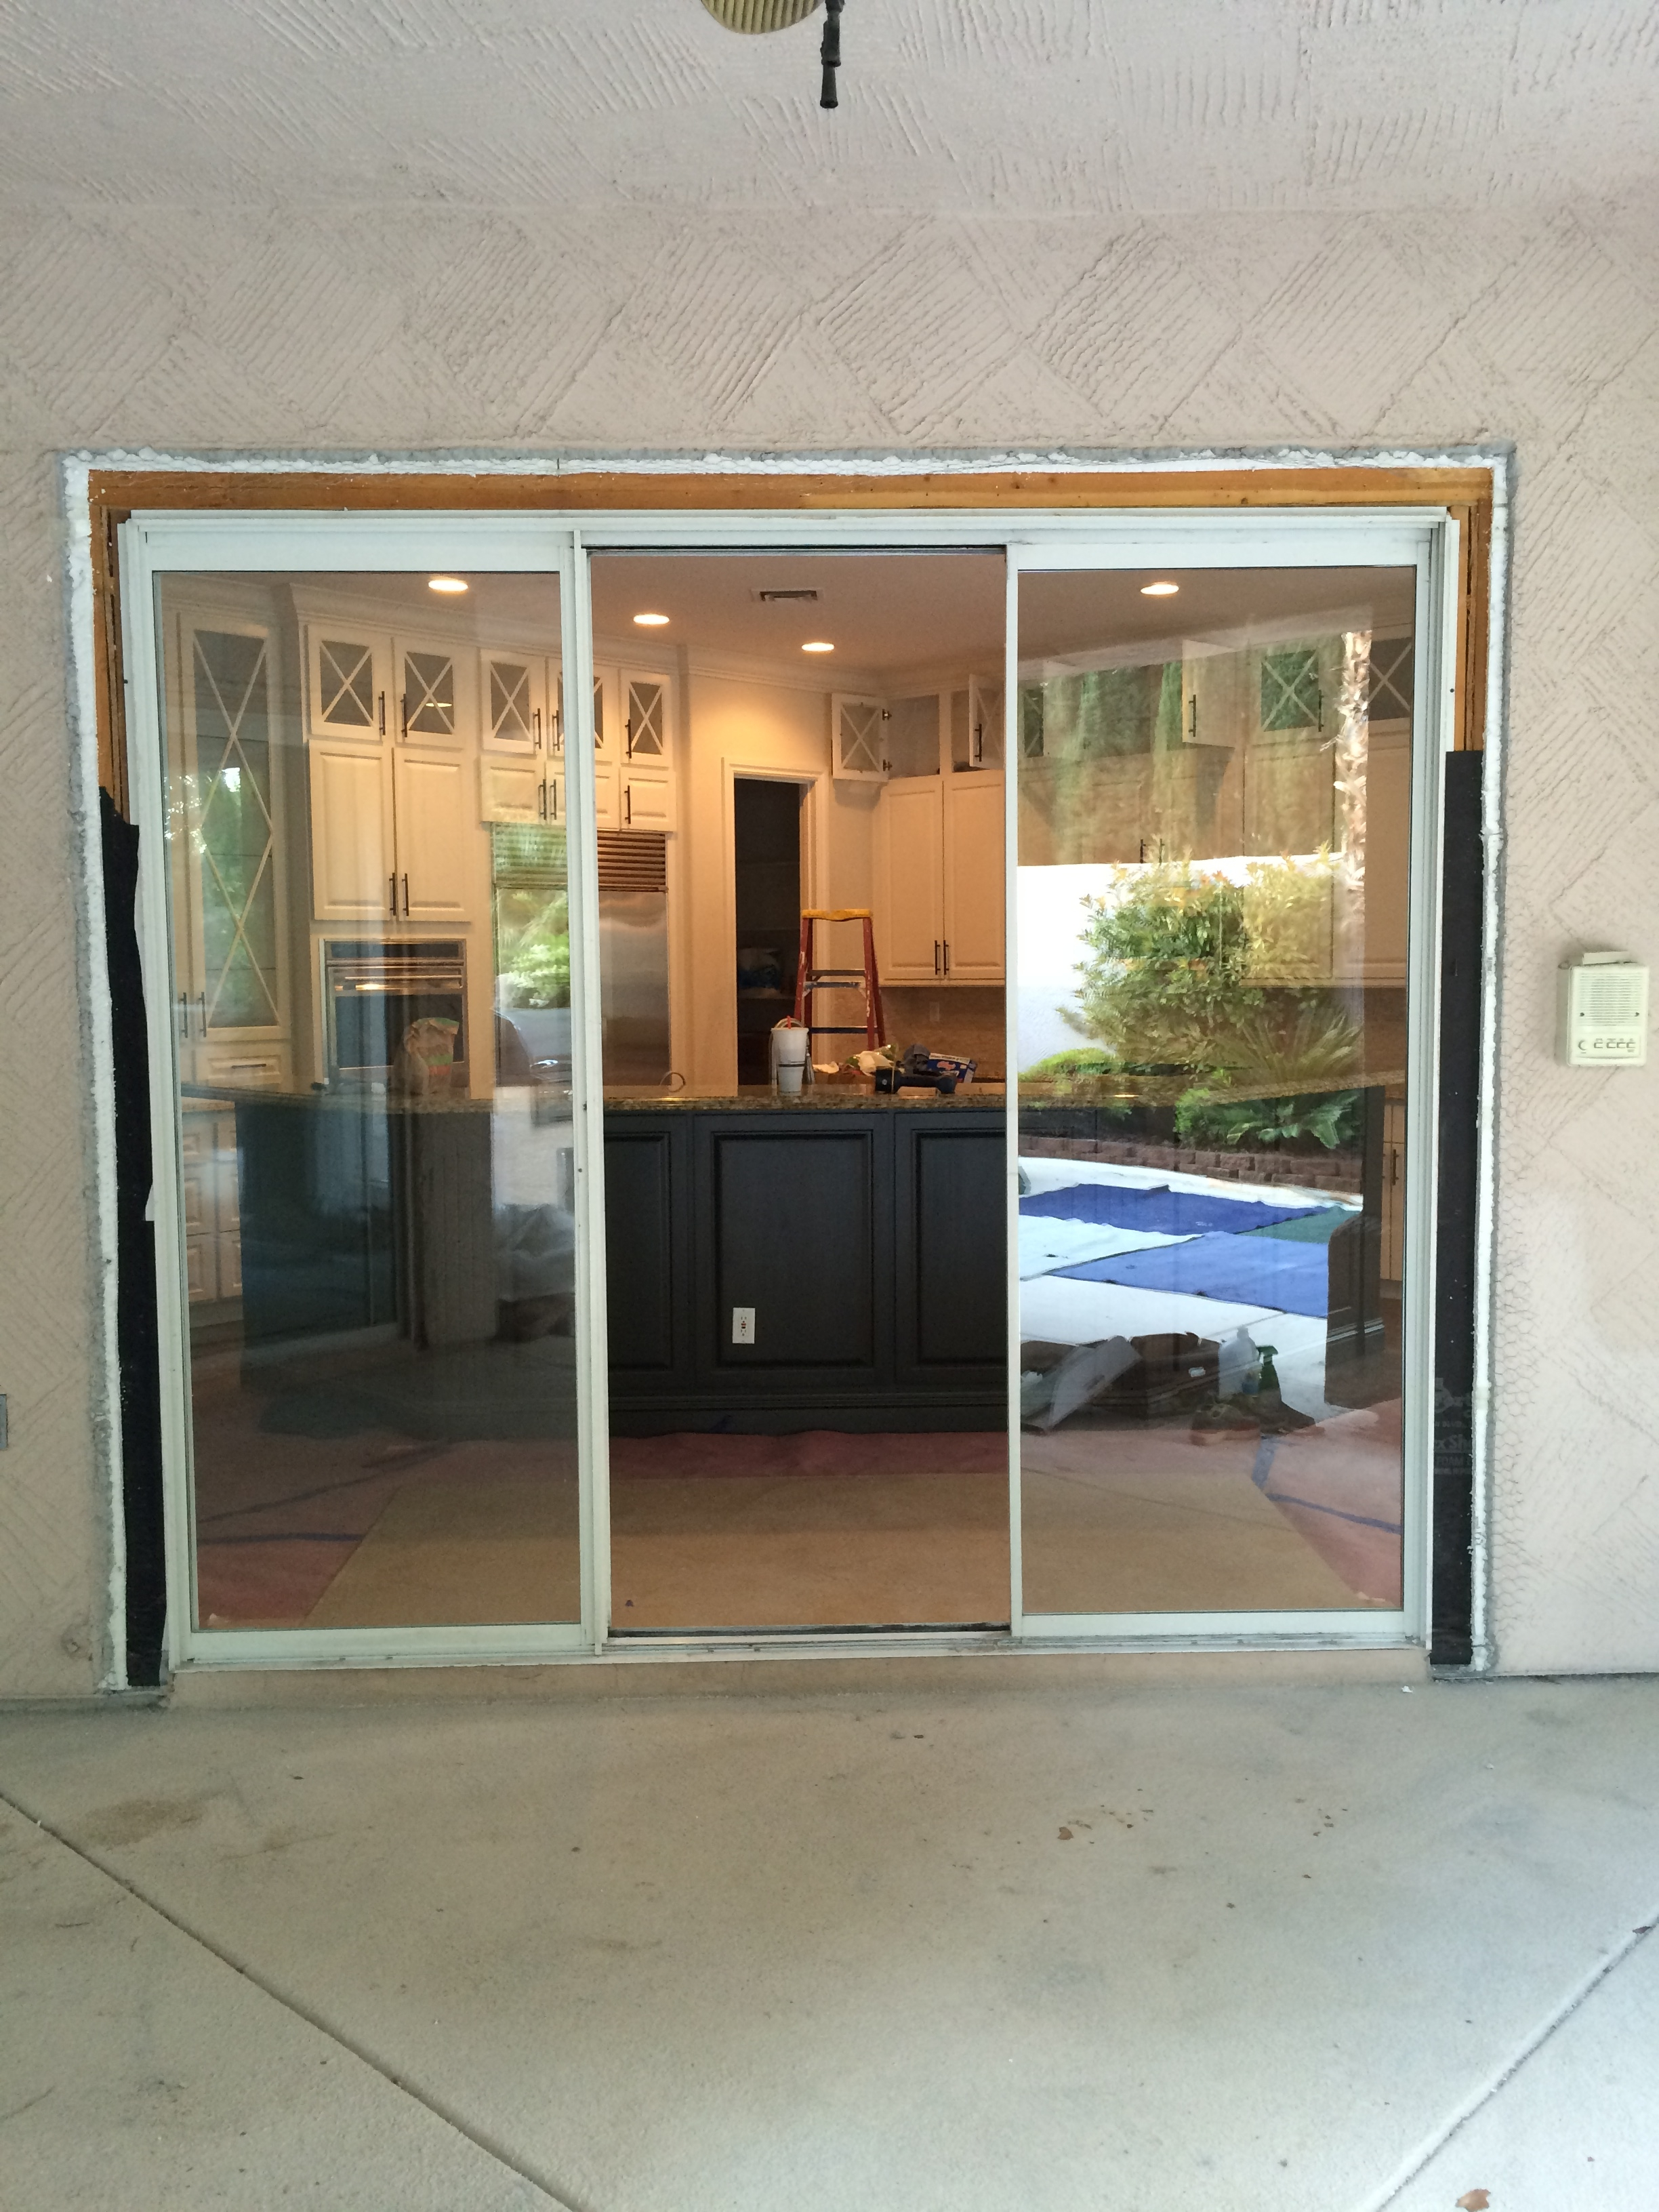 9 Foot Tall Sliding Glass Doors Sliding Doors